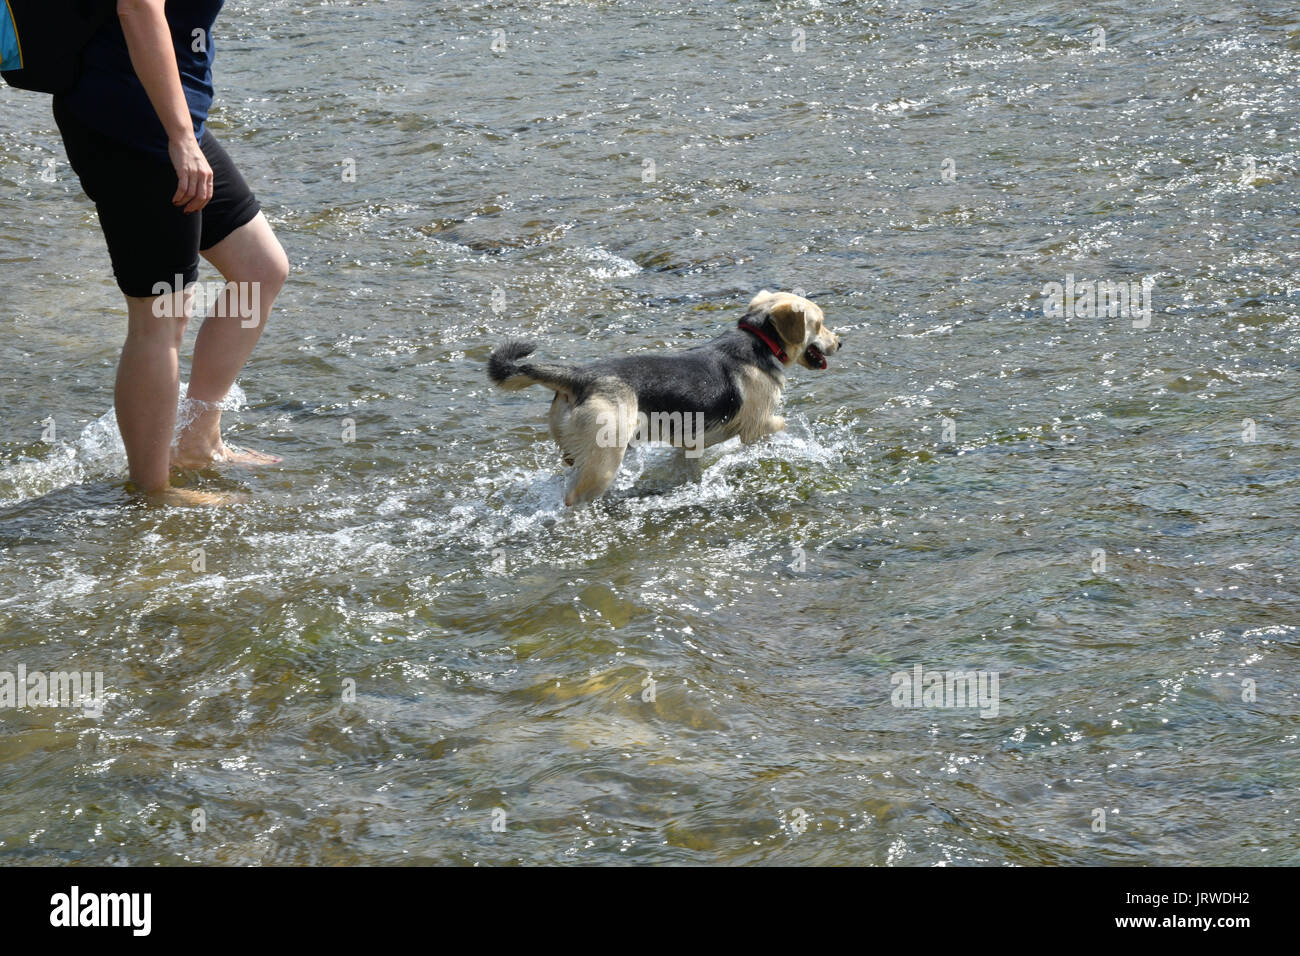 Refreshing walk in river in hot sommer with dog - Stock Image